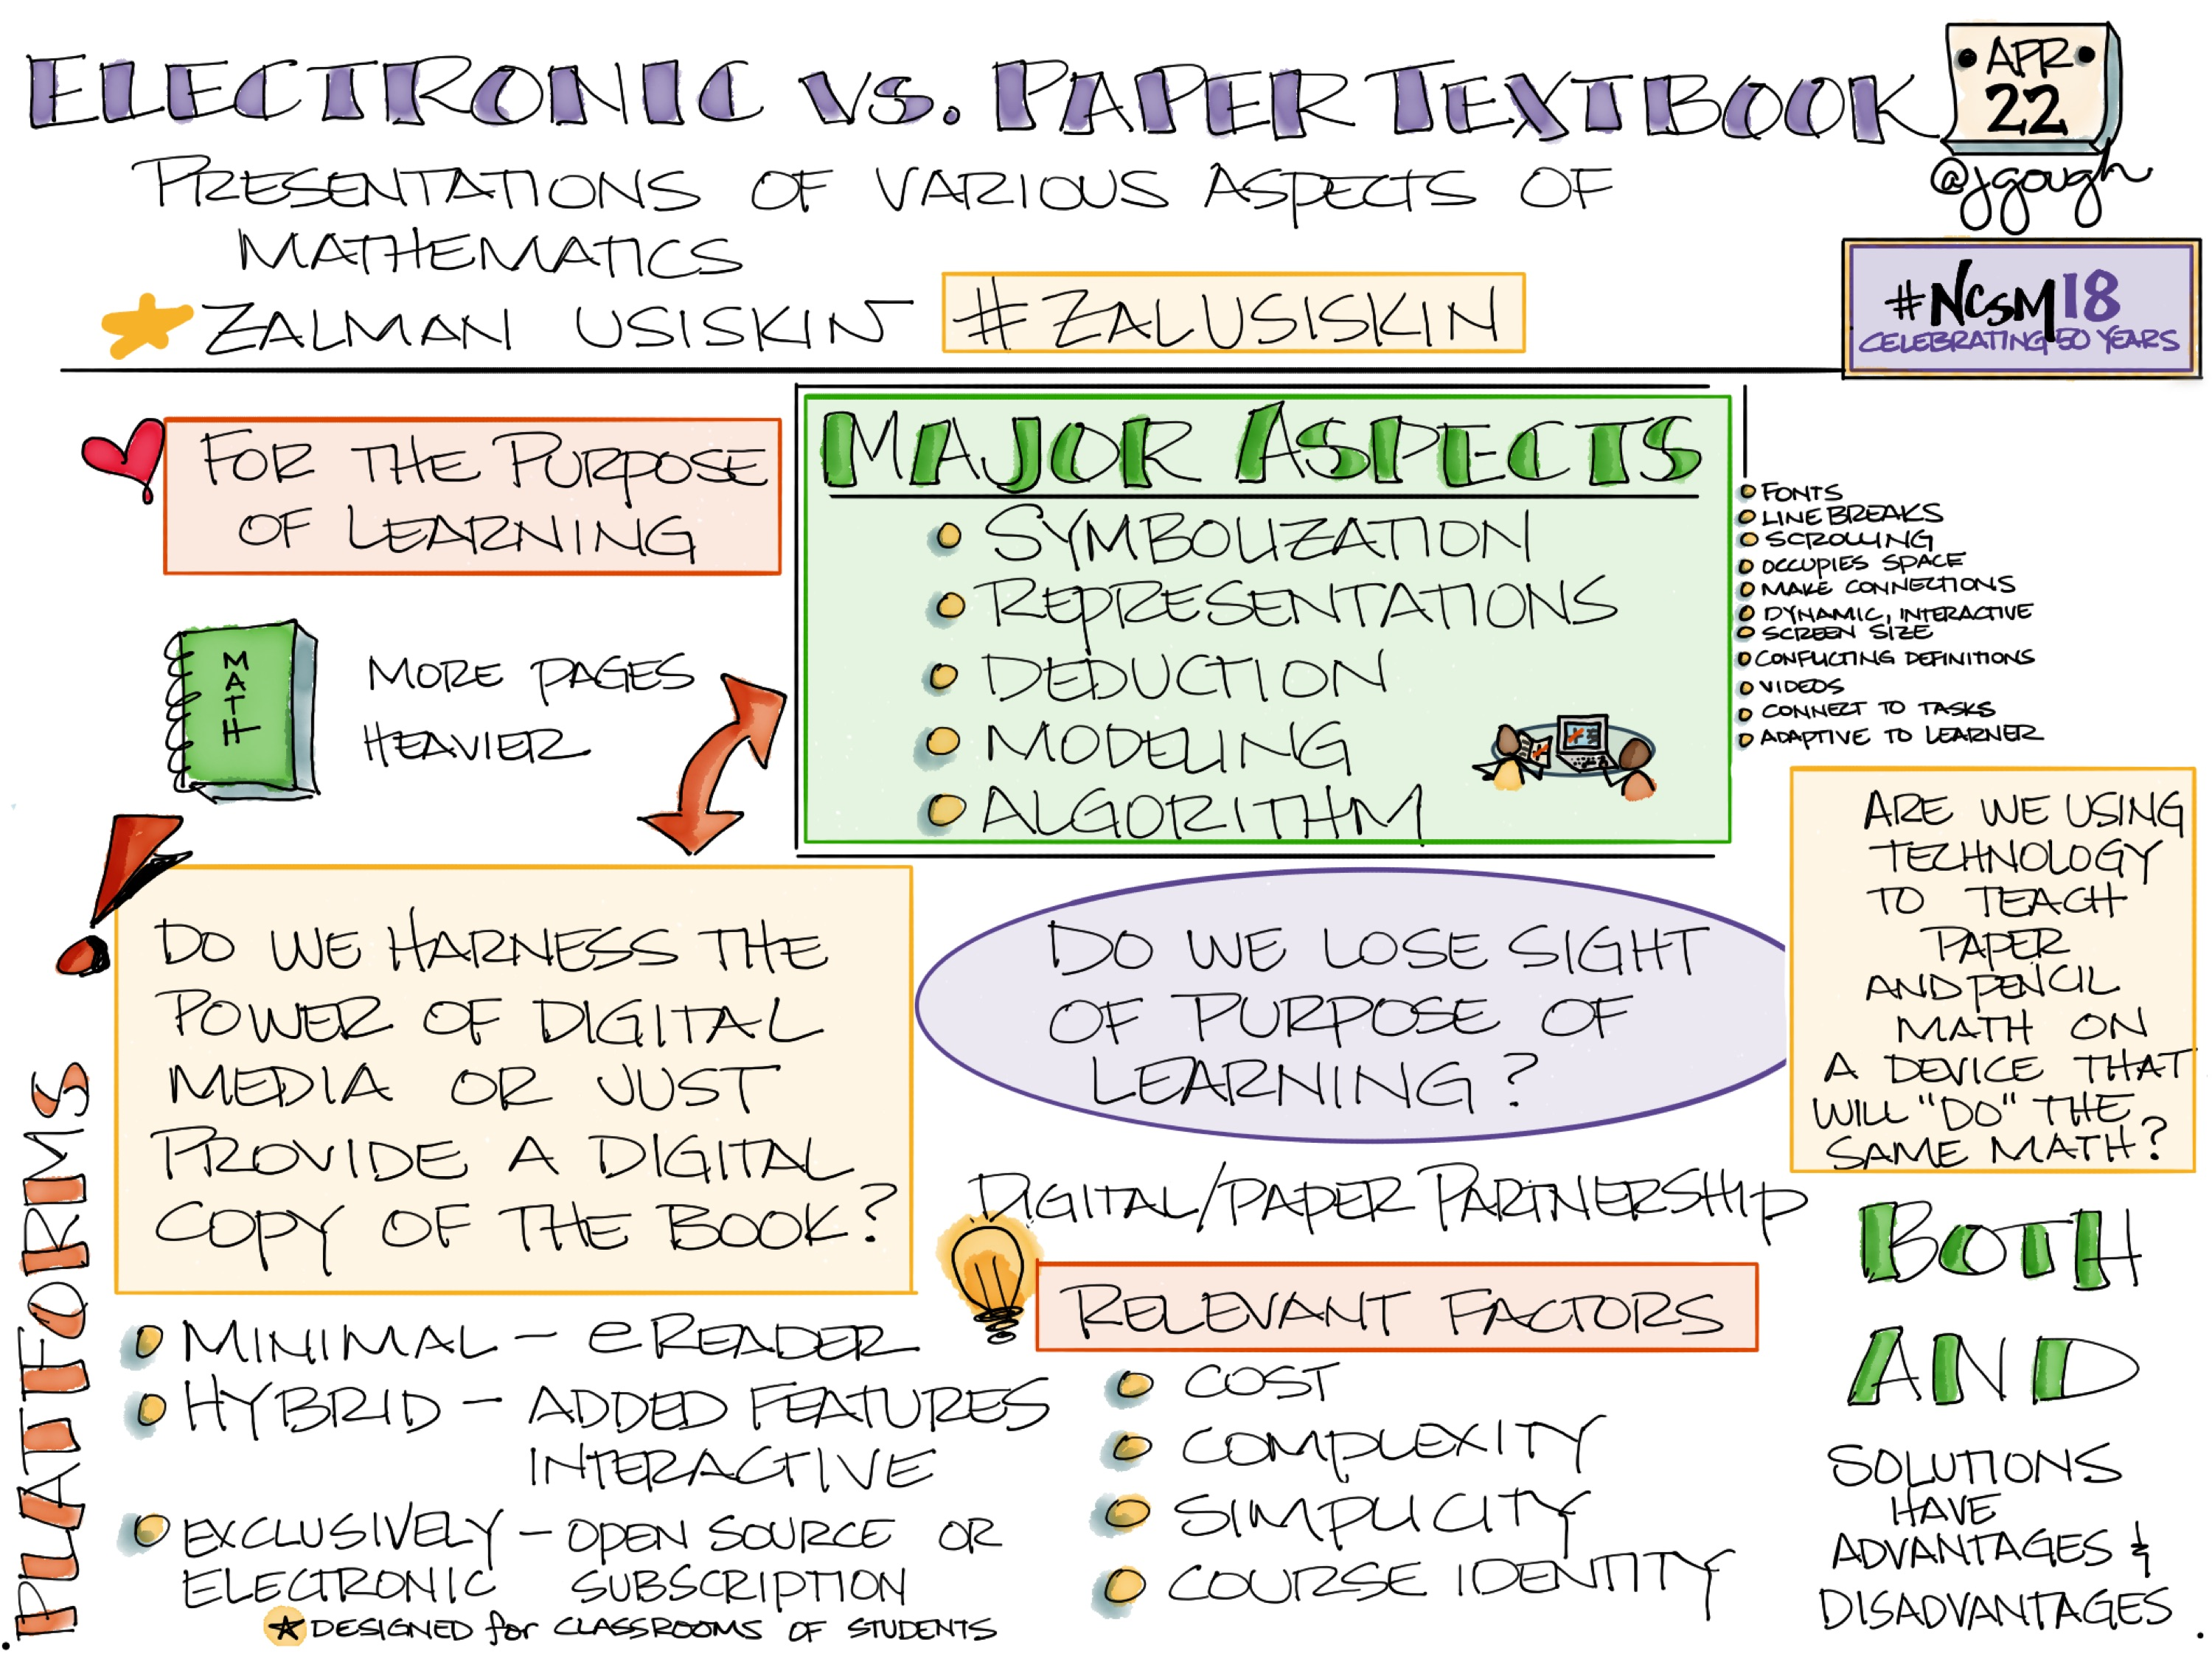 Electronic vs. Paper Textbook: Presentations of Various Aspects of Mathematics from #ZalUsiskin #NCSM18